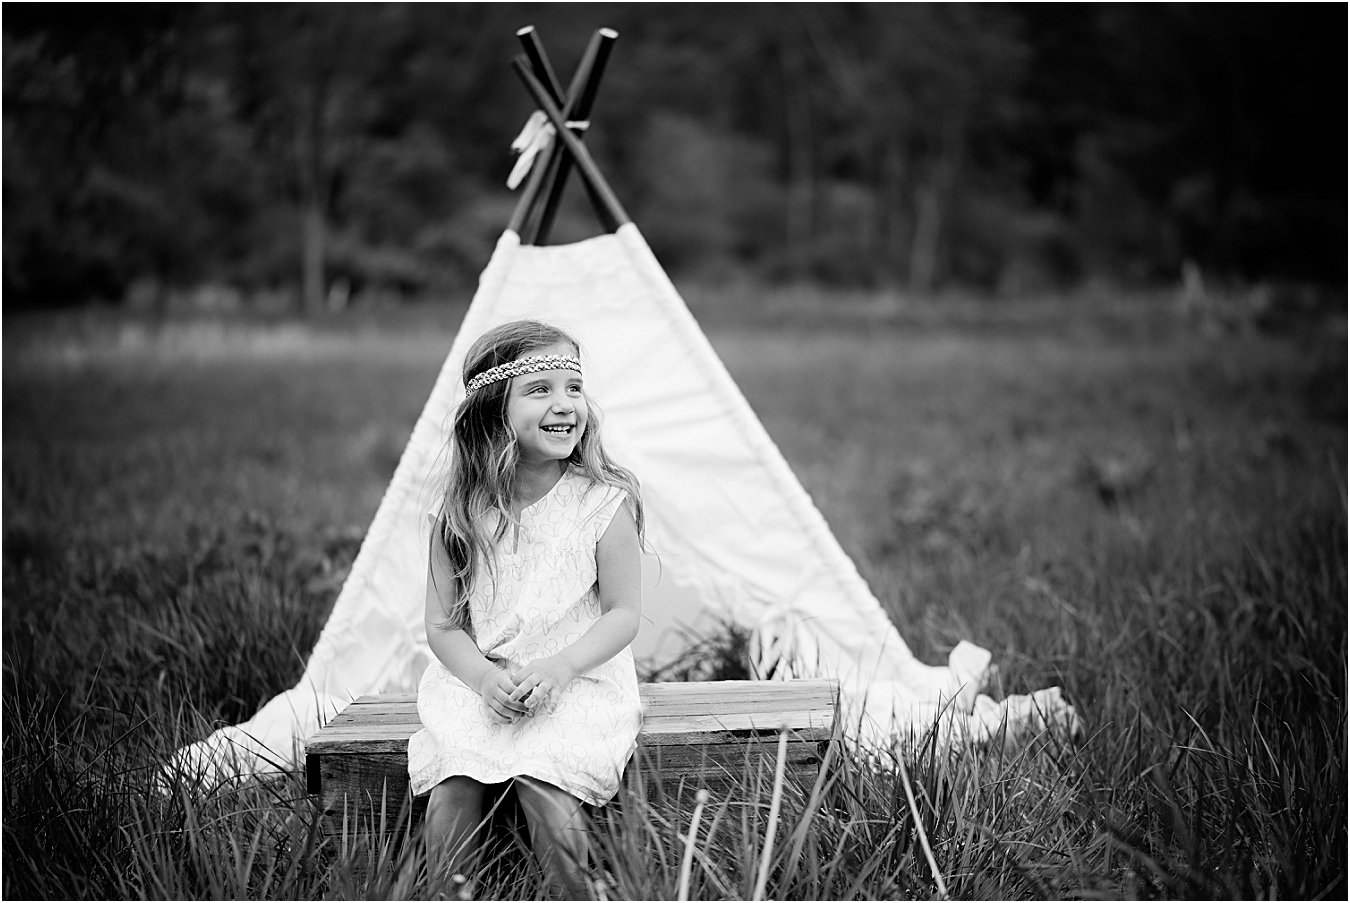 Boho Baby by Williamsport Children's Photographer Tara Betz